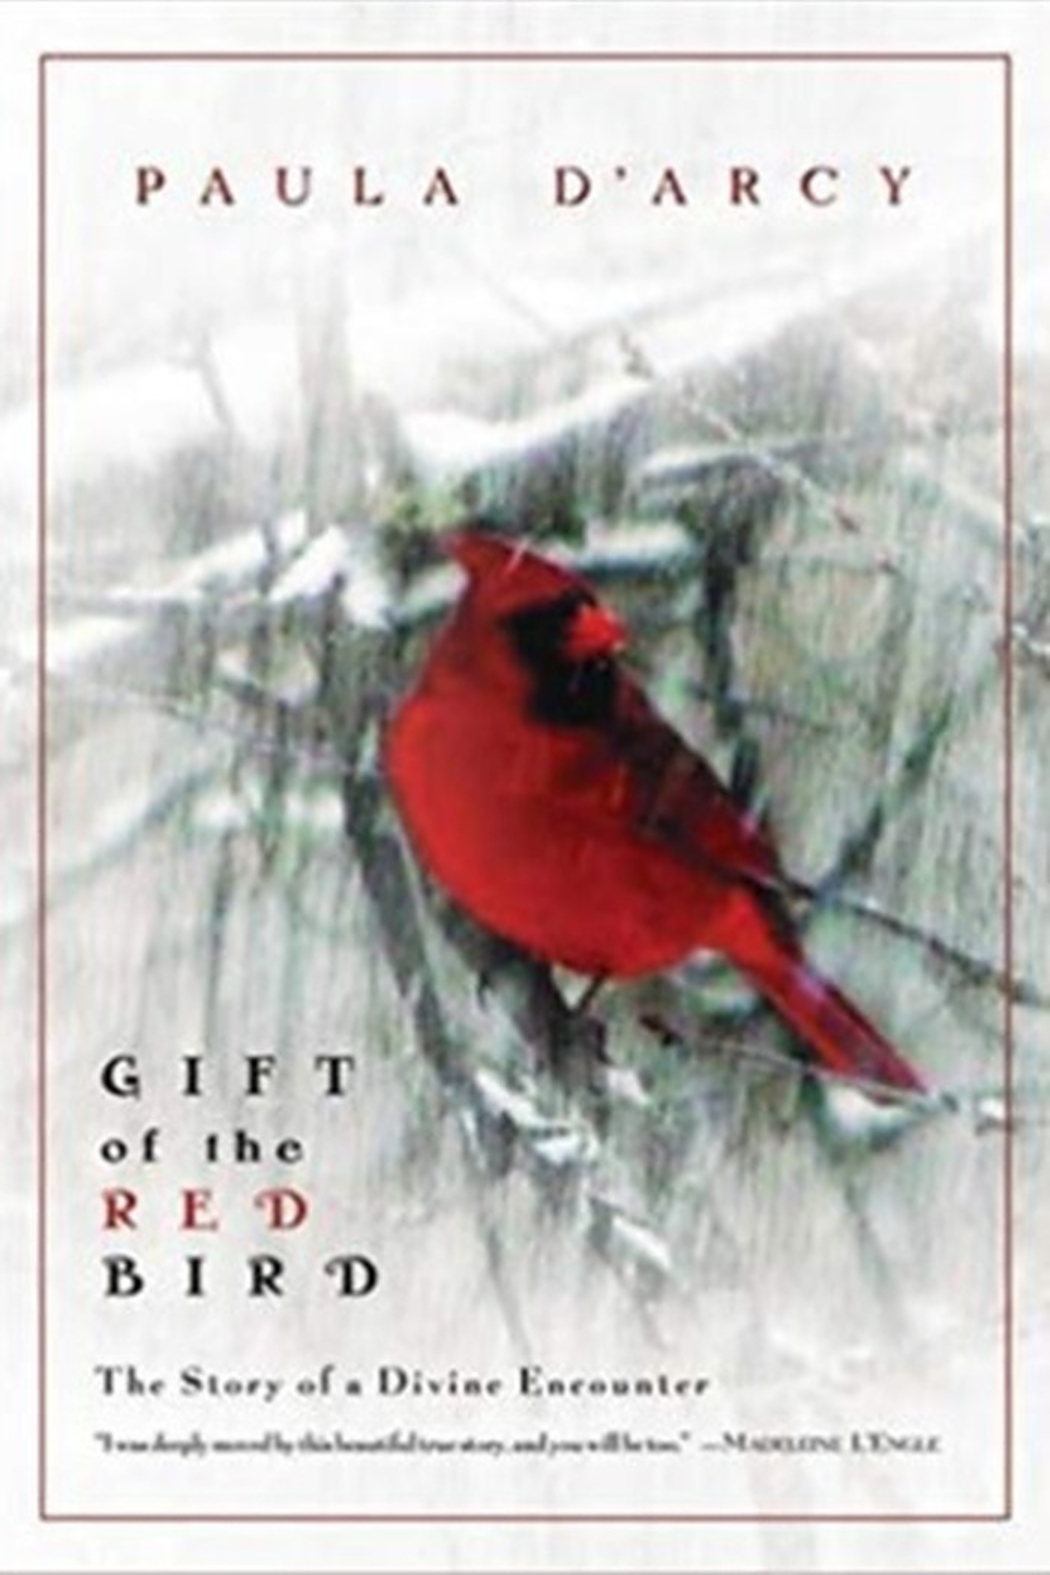 Crossroads GIFT OF THE RED BIRD BOOK BY PAULA D'ARCY - Main Image